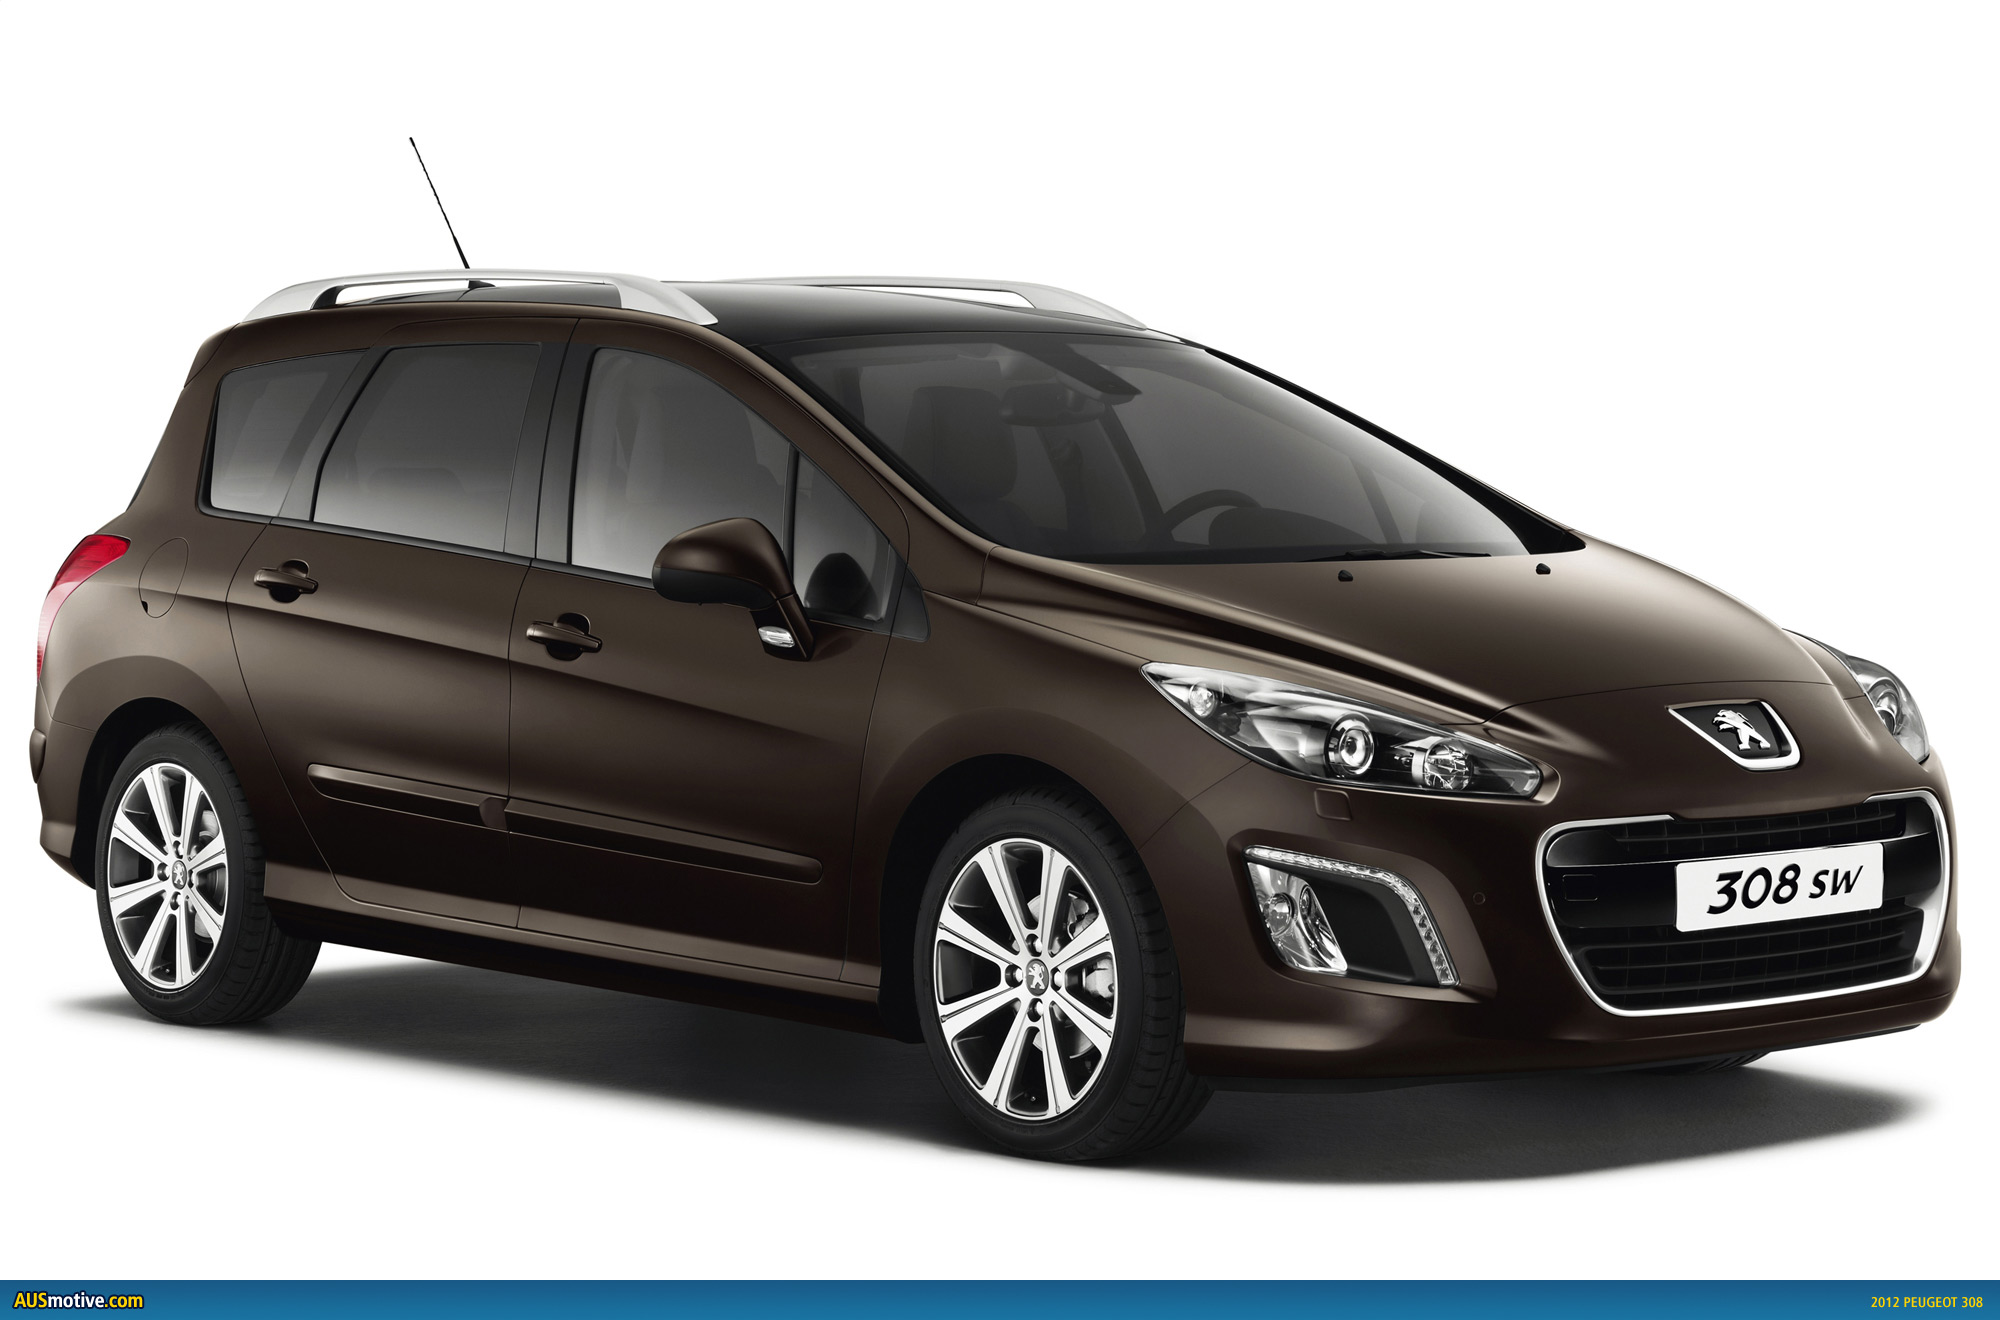 2012 peugeot 308 revealed ahead of mid. Black Bedroom Furniture Sets. Home Design Ideas